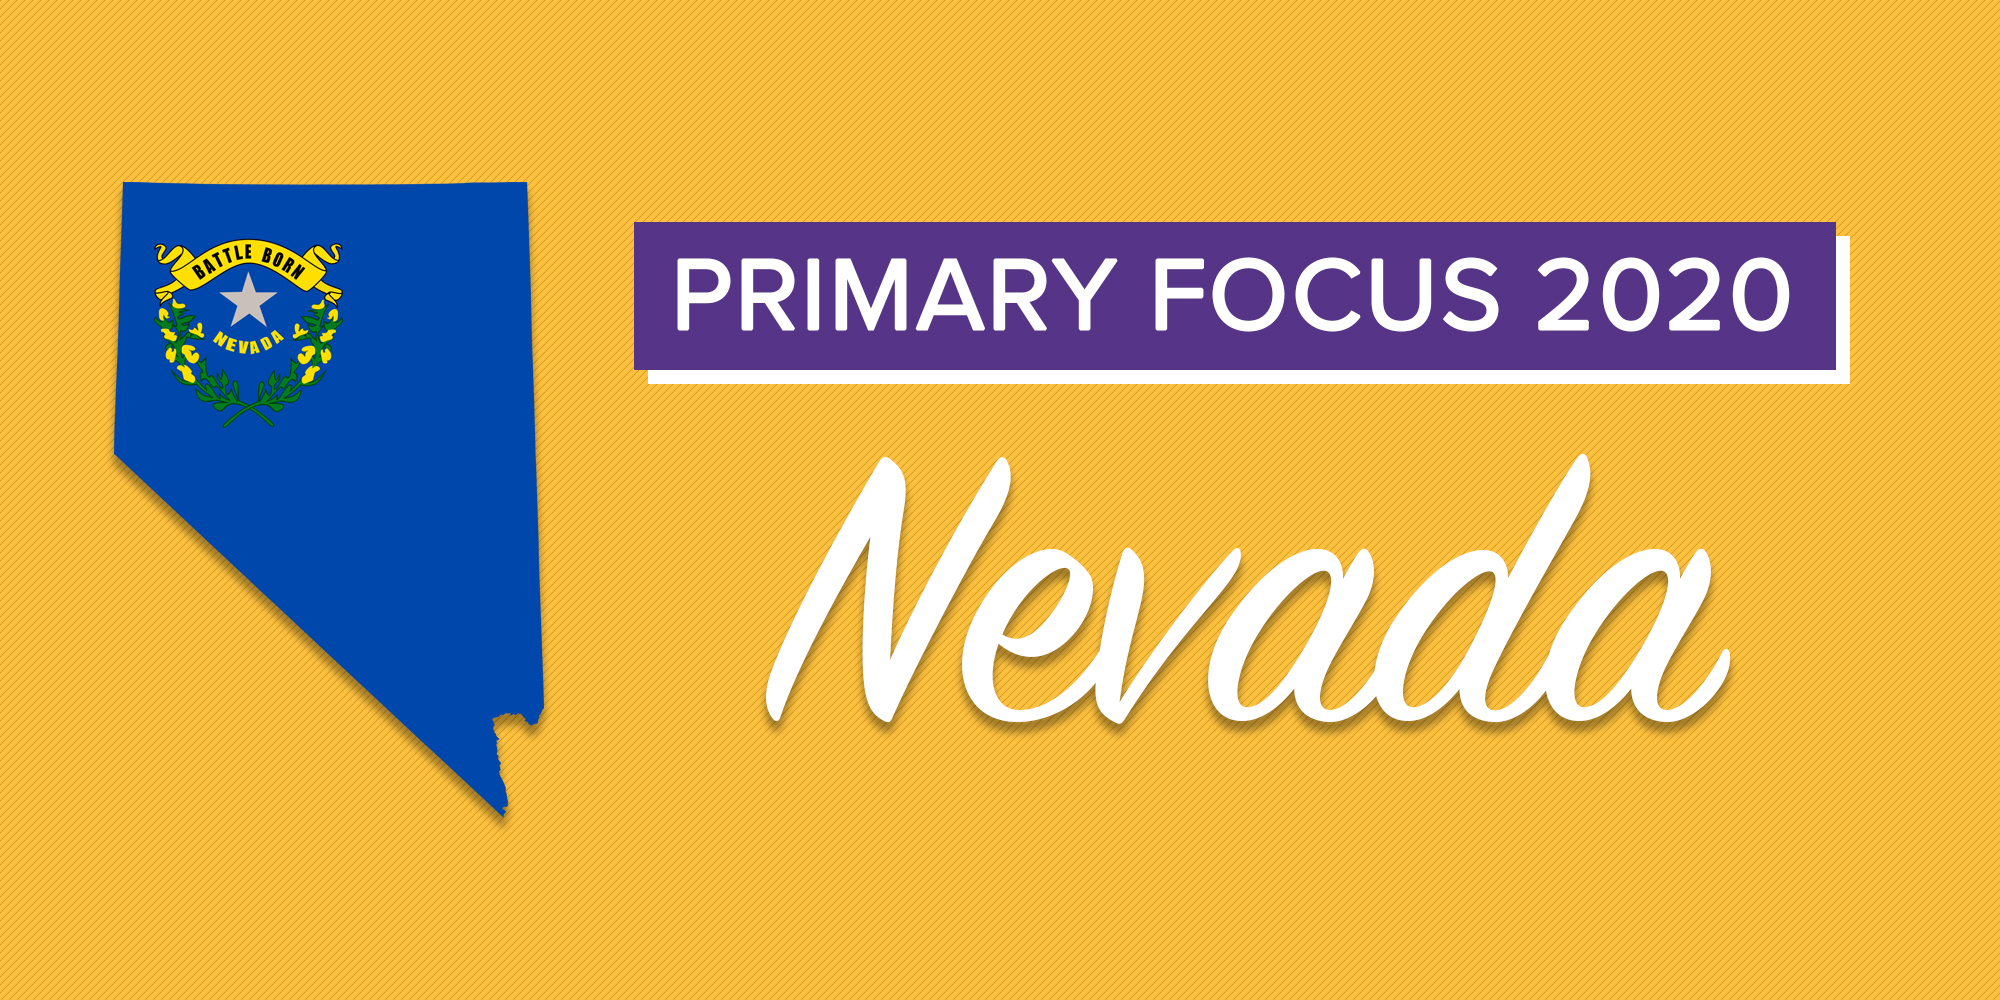 Nevada's partial use of RCV helped mitigate caucus issues, but more changes are needed